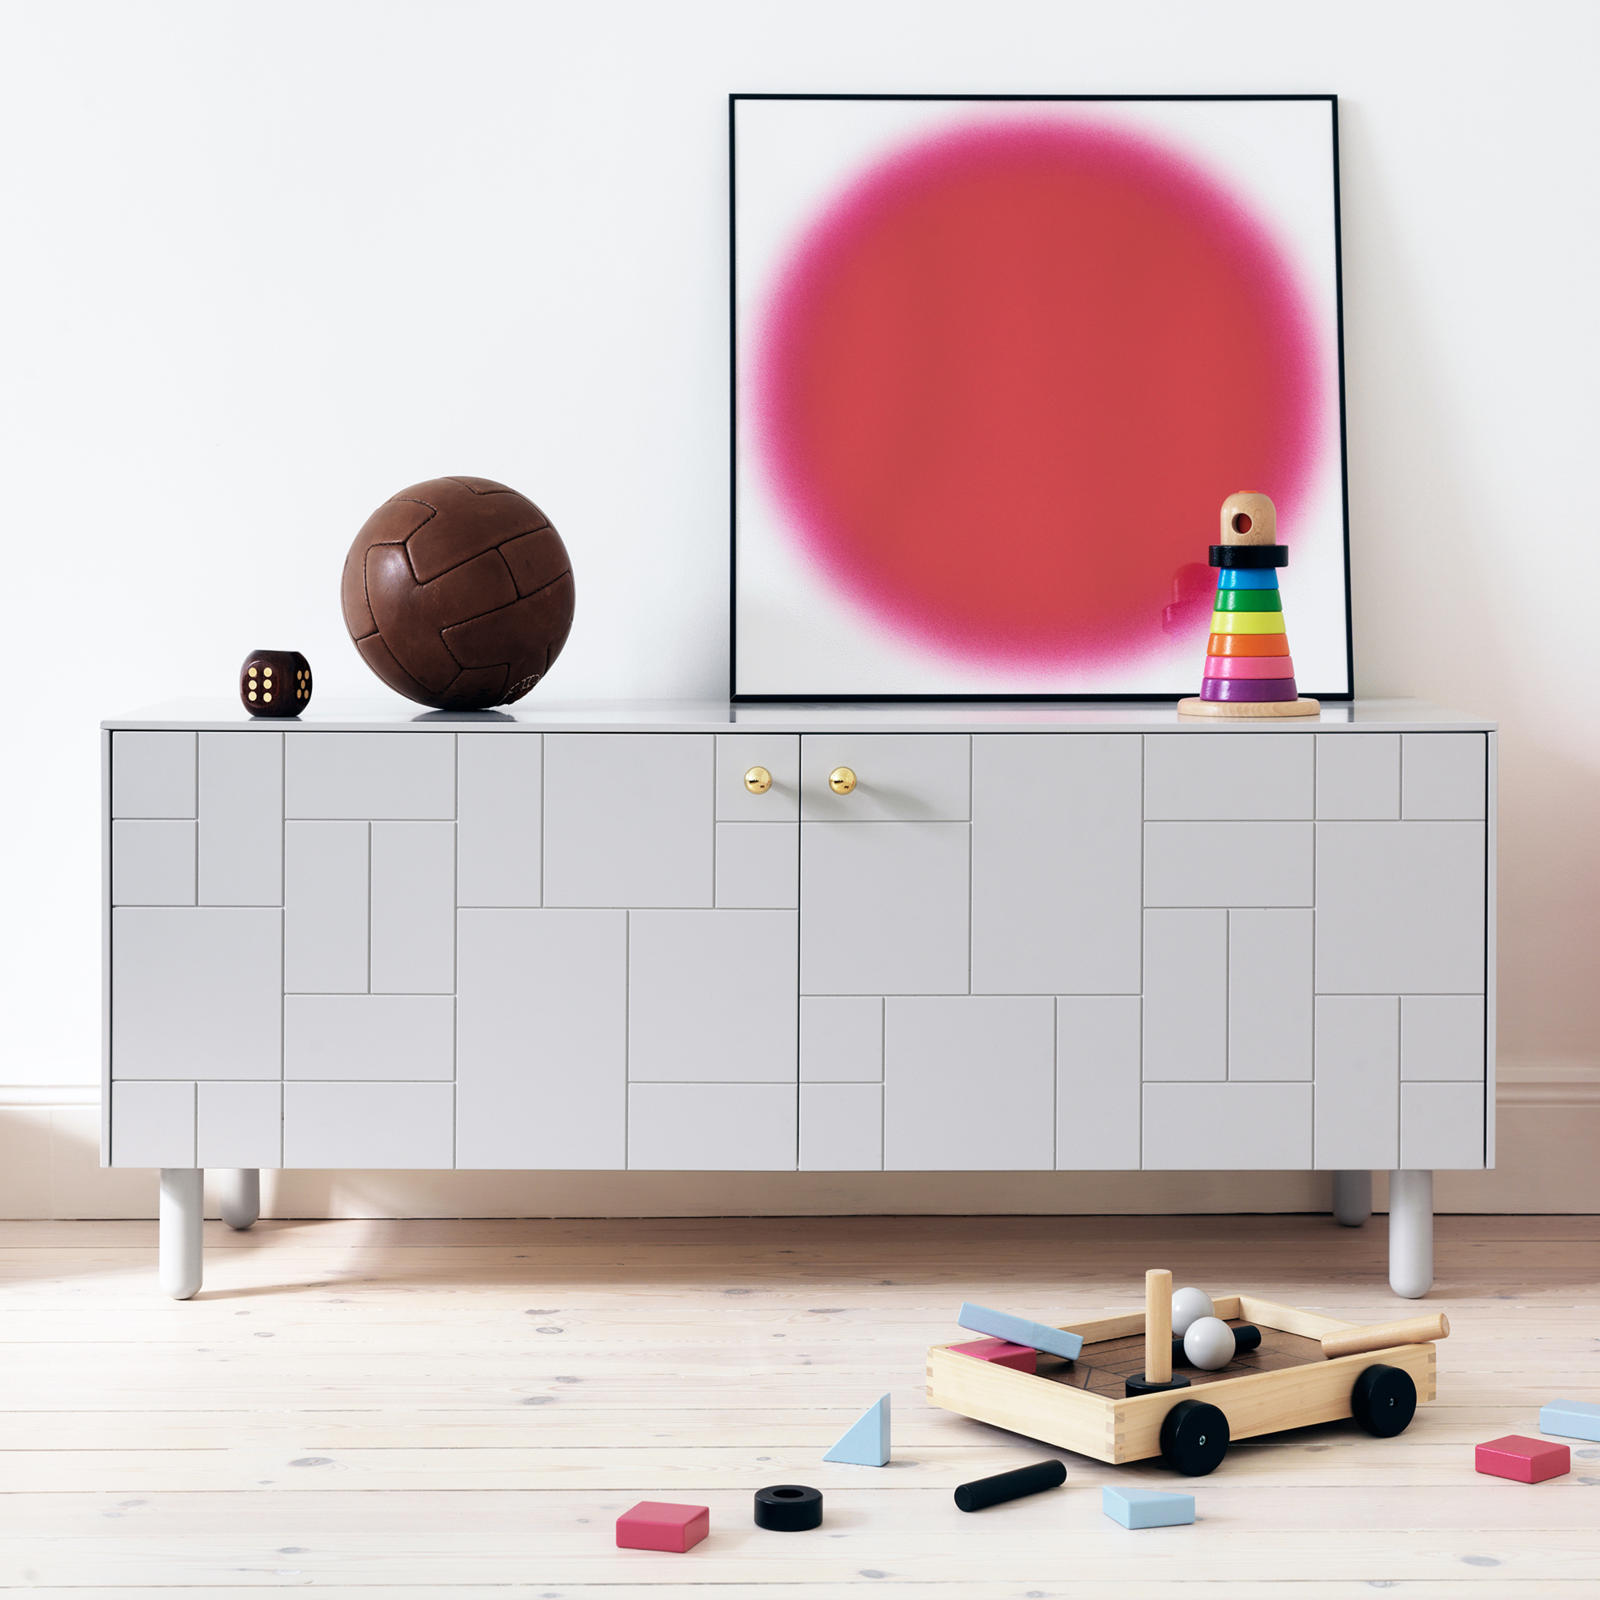 Sideboard in children's room with cube patterned fronts and minimalist furniture leg in grey